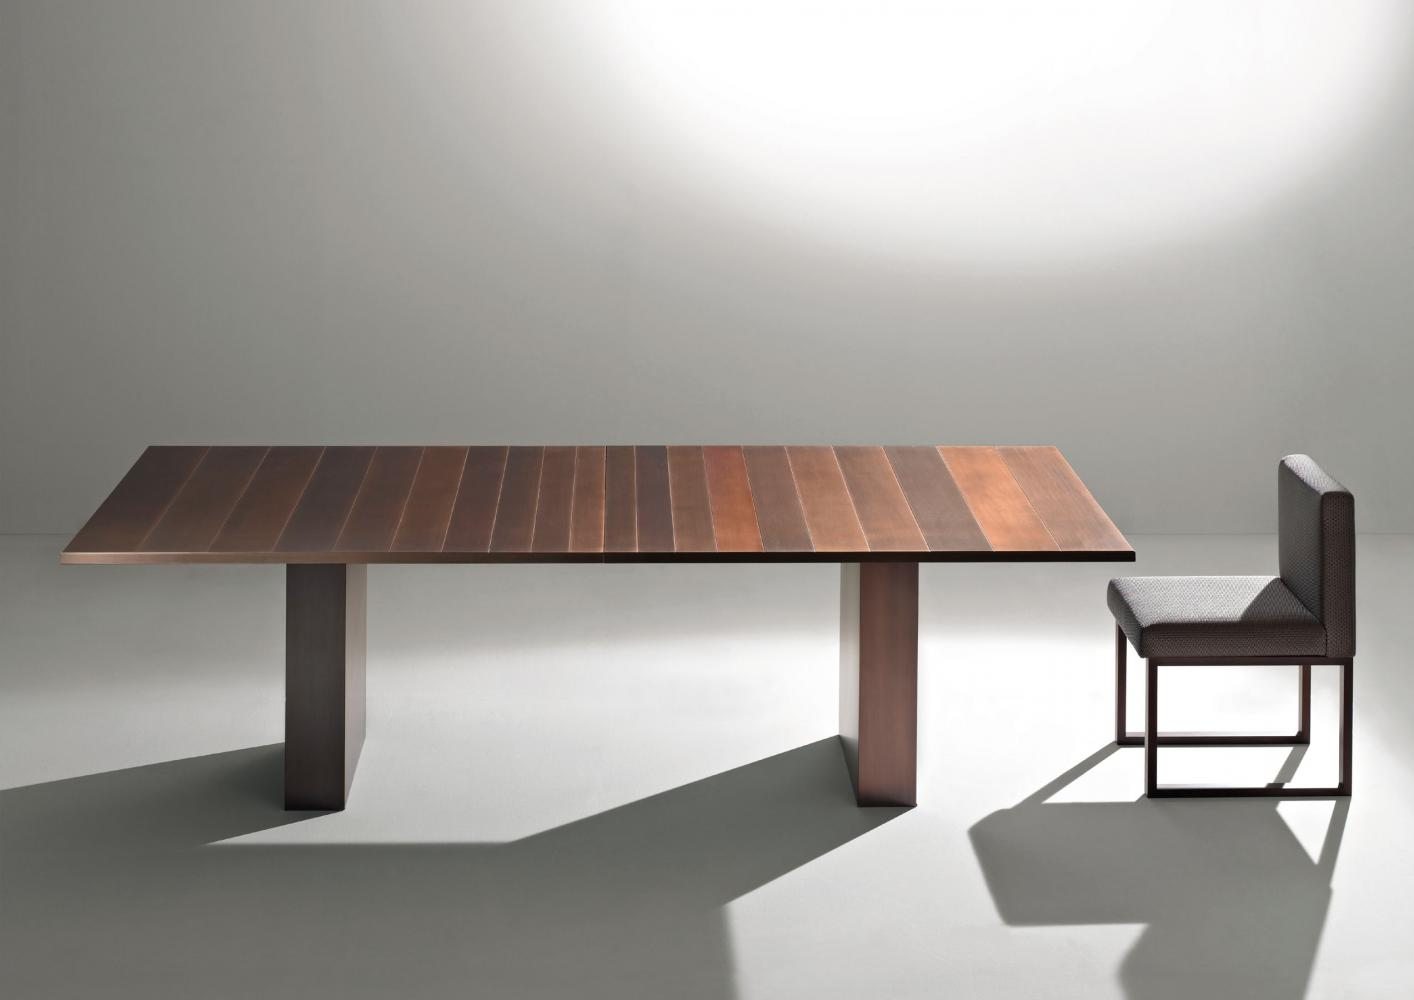 Luxury custom made table cladded in burnished copper